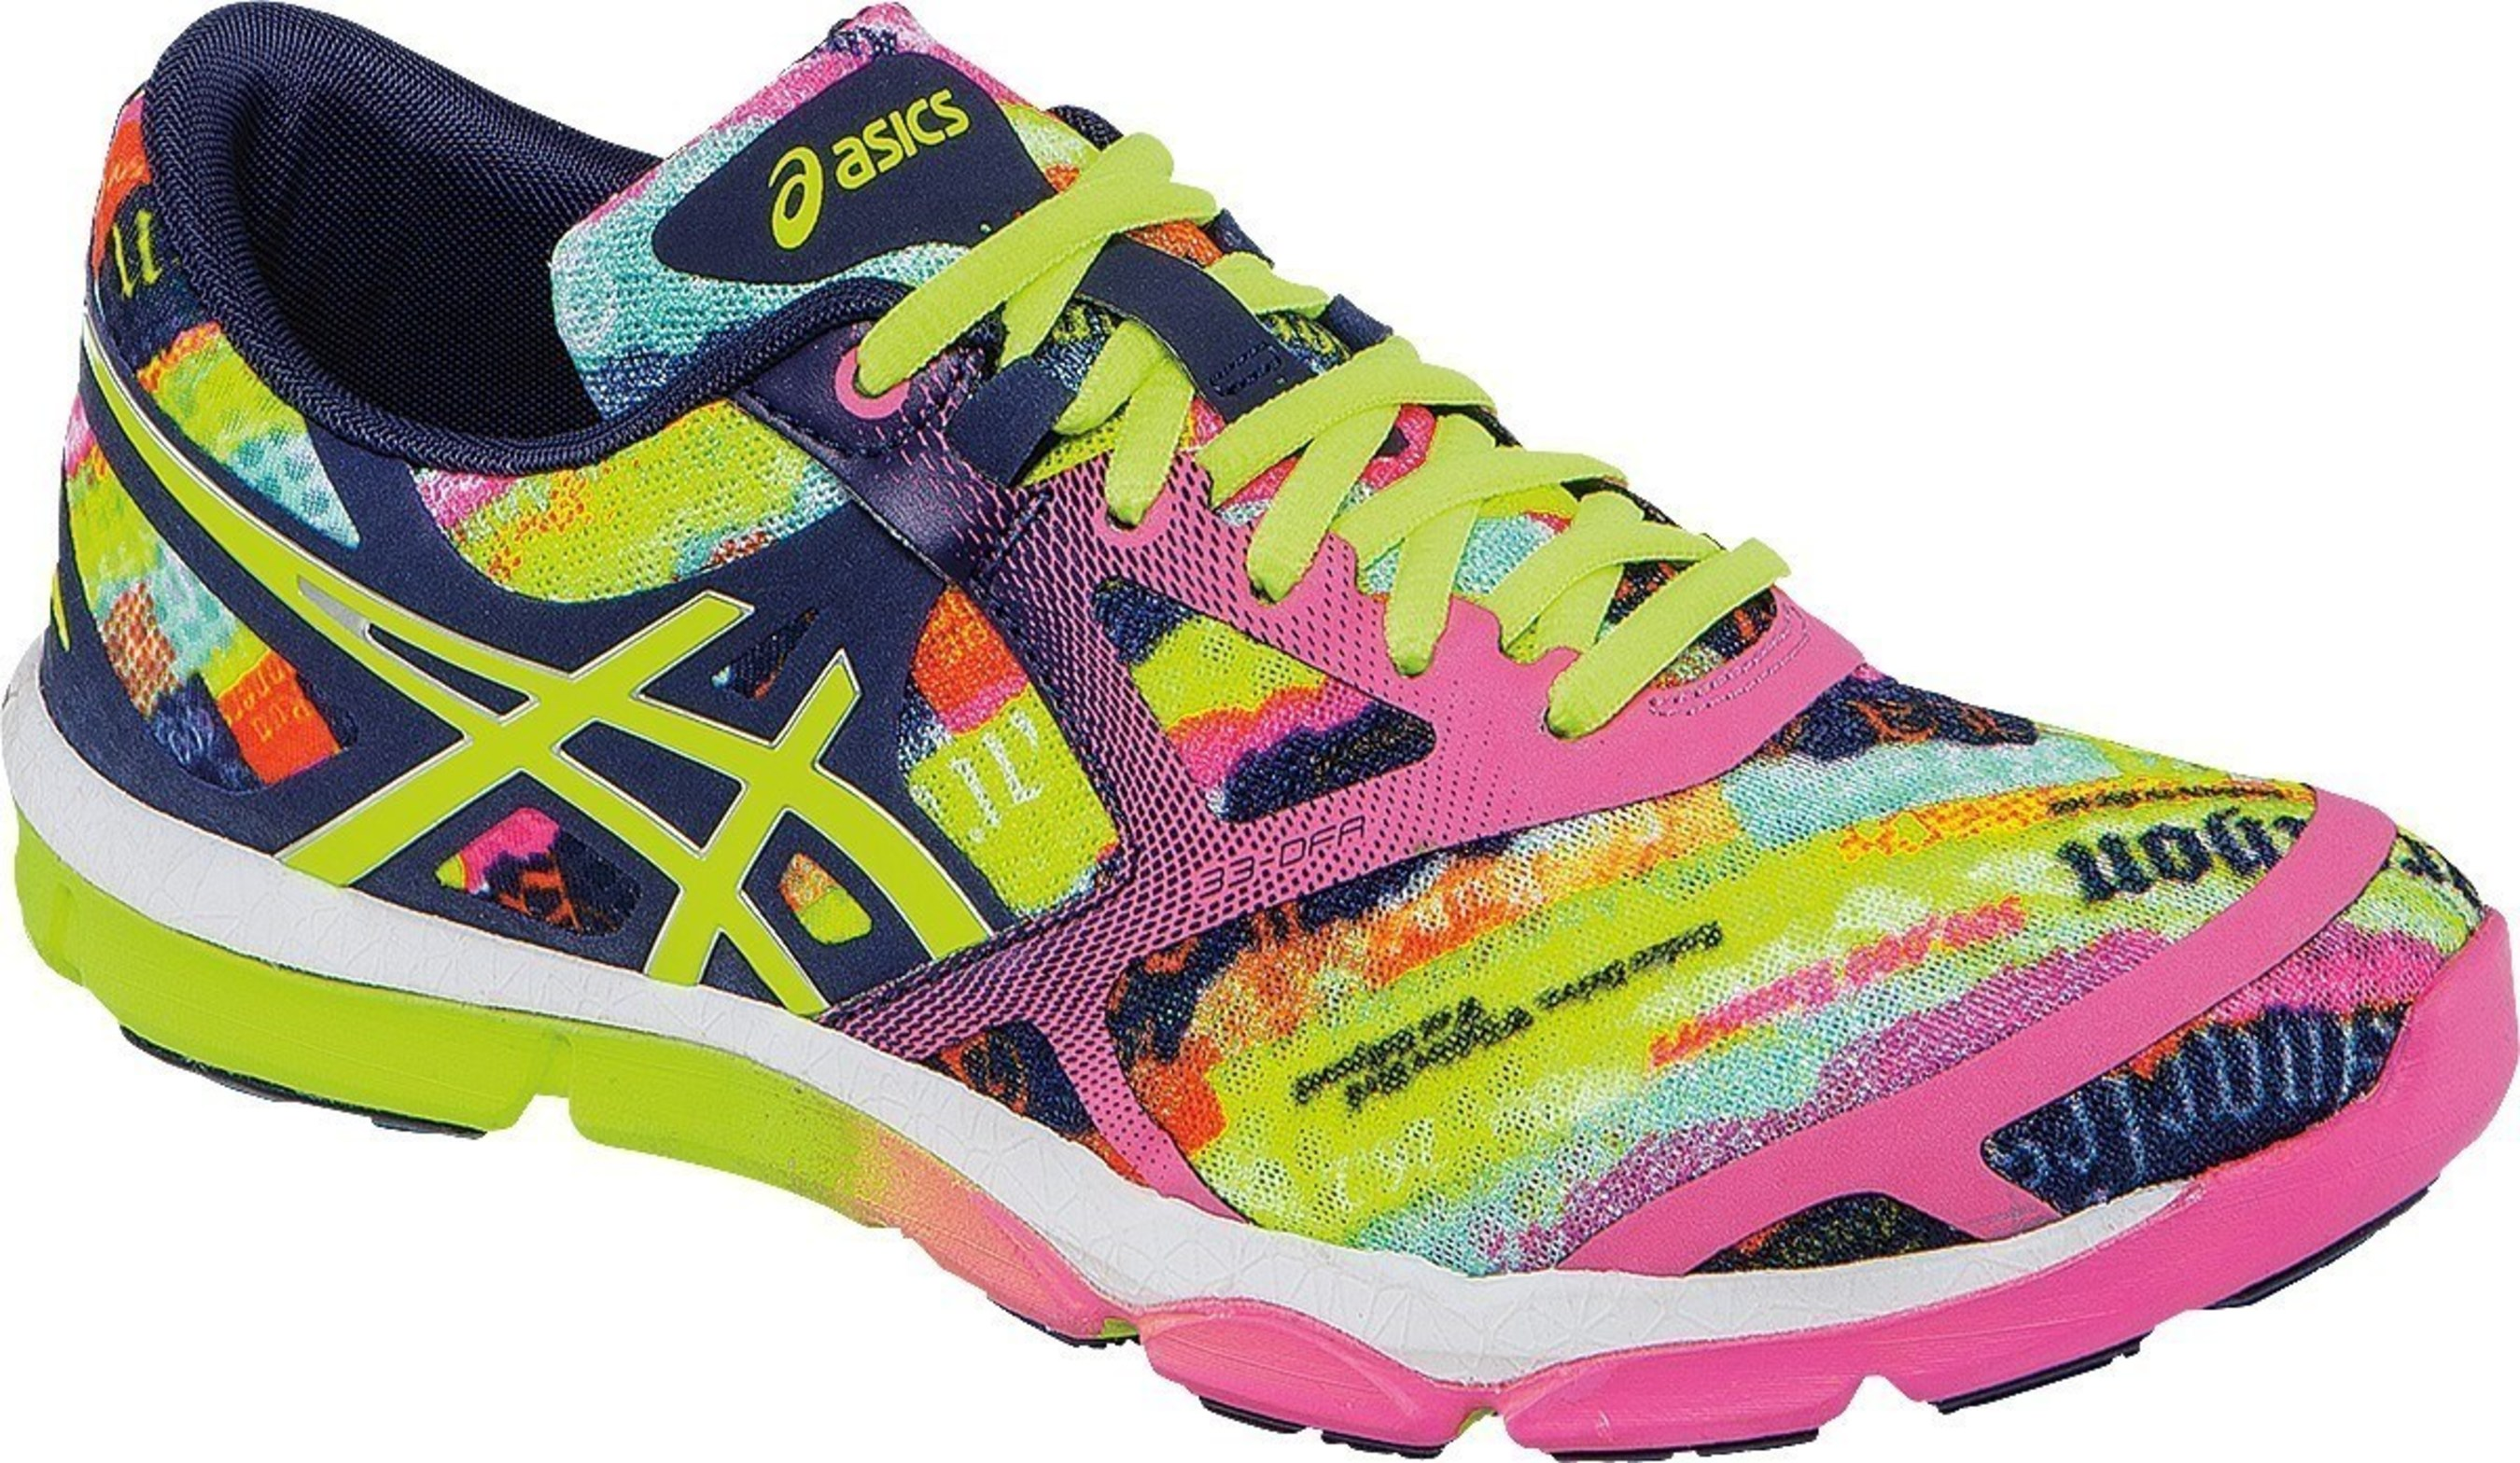 To celebrate the 30th edition of the race, ASICS launched the 2015 LA Marathon 33-DFA(TM) shoe.  The design highlights the various marathon route destinations on the Stadium to Sea course. (Photo credit:  Courtesy ASICS)